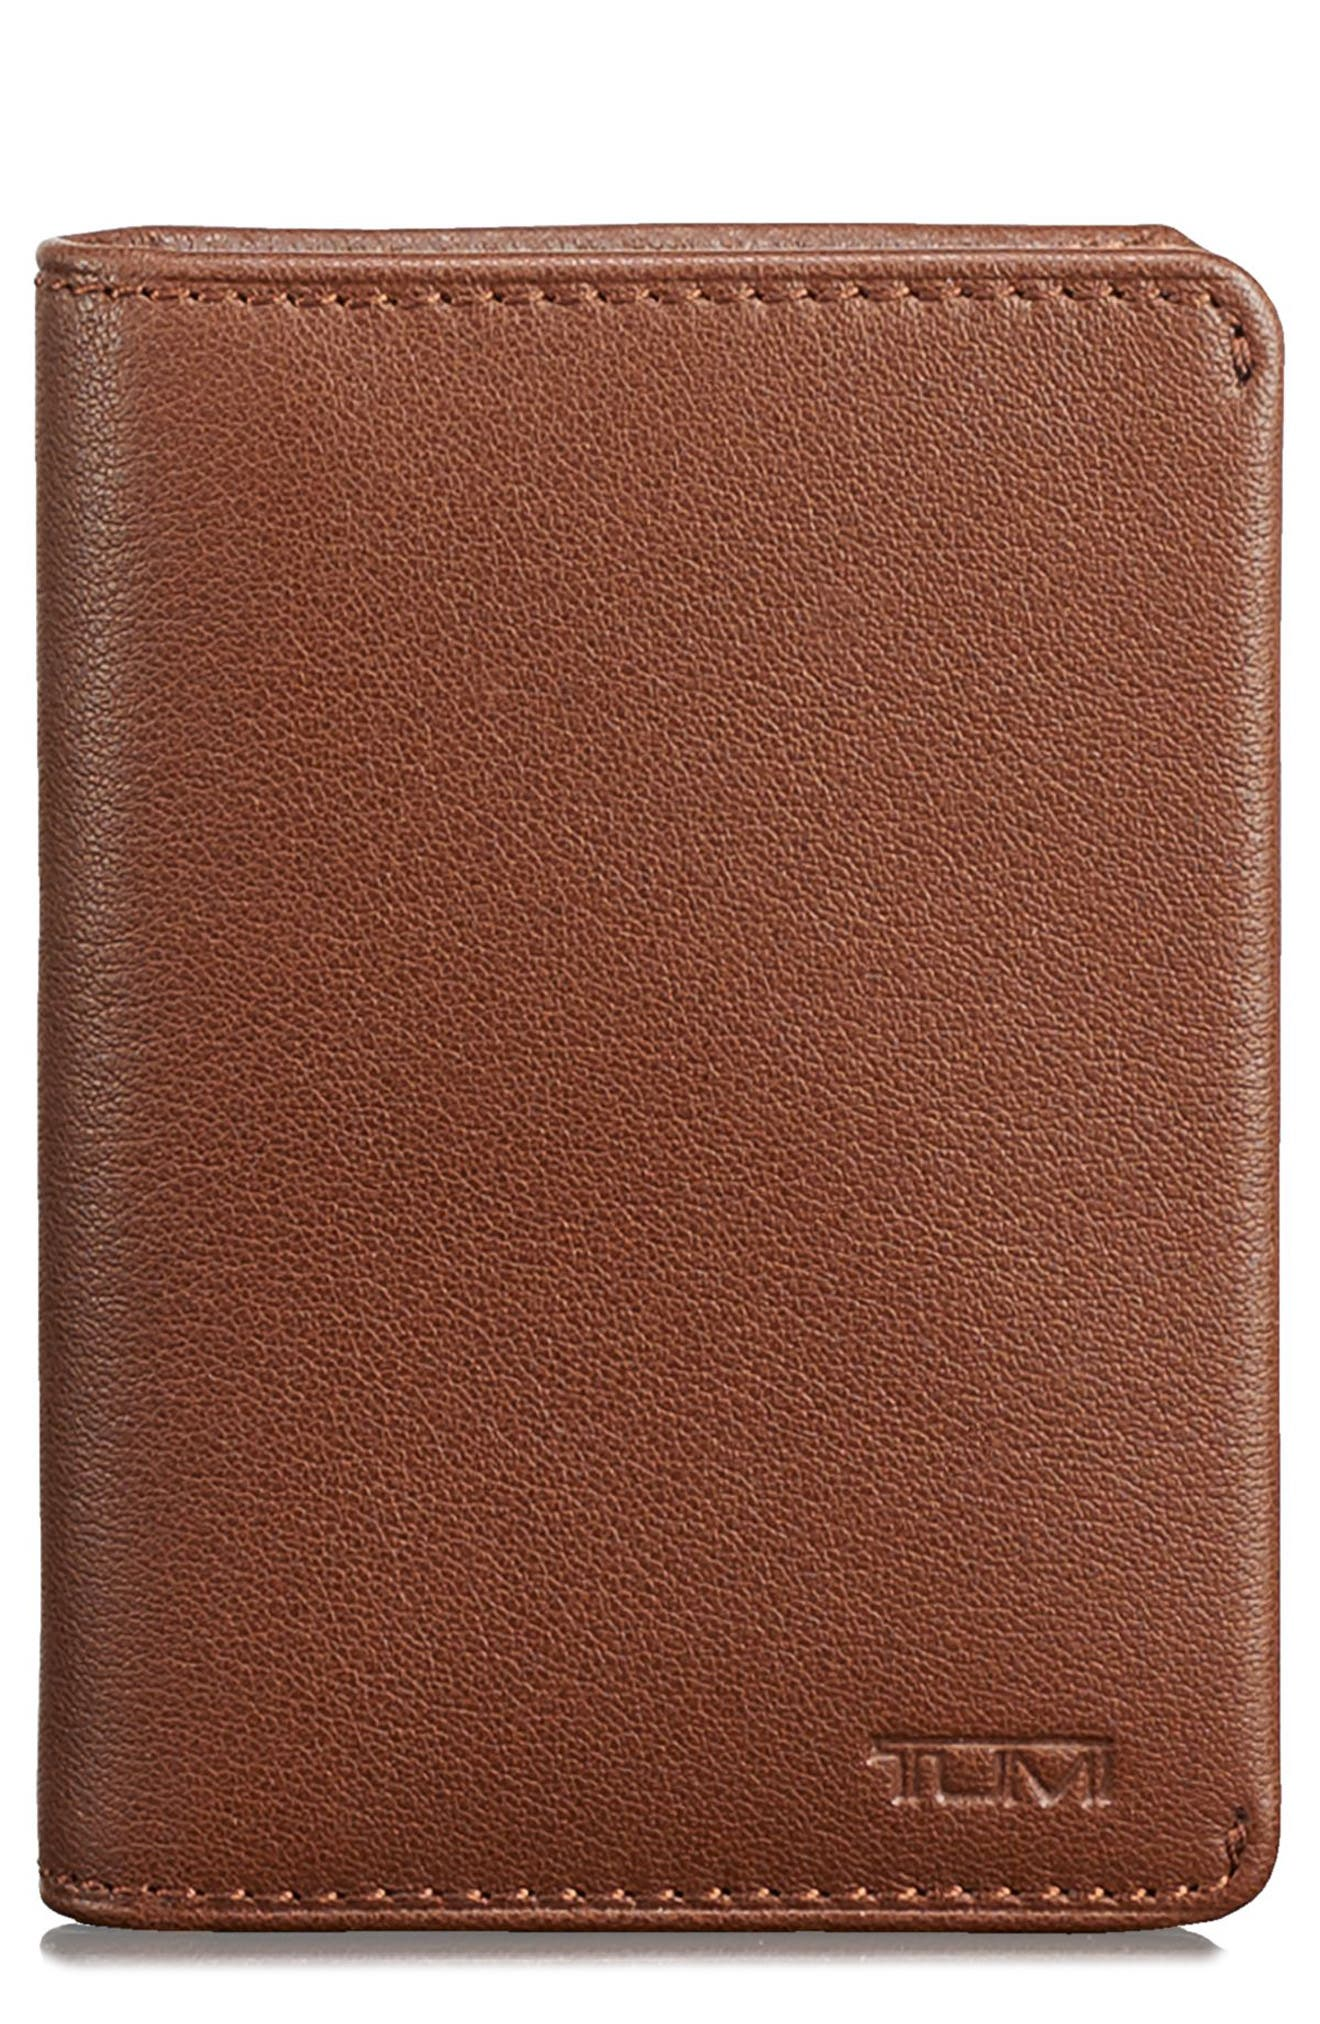 Leather RFID Card Case,                             Main thumbnail 2, color,